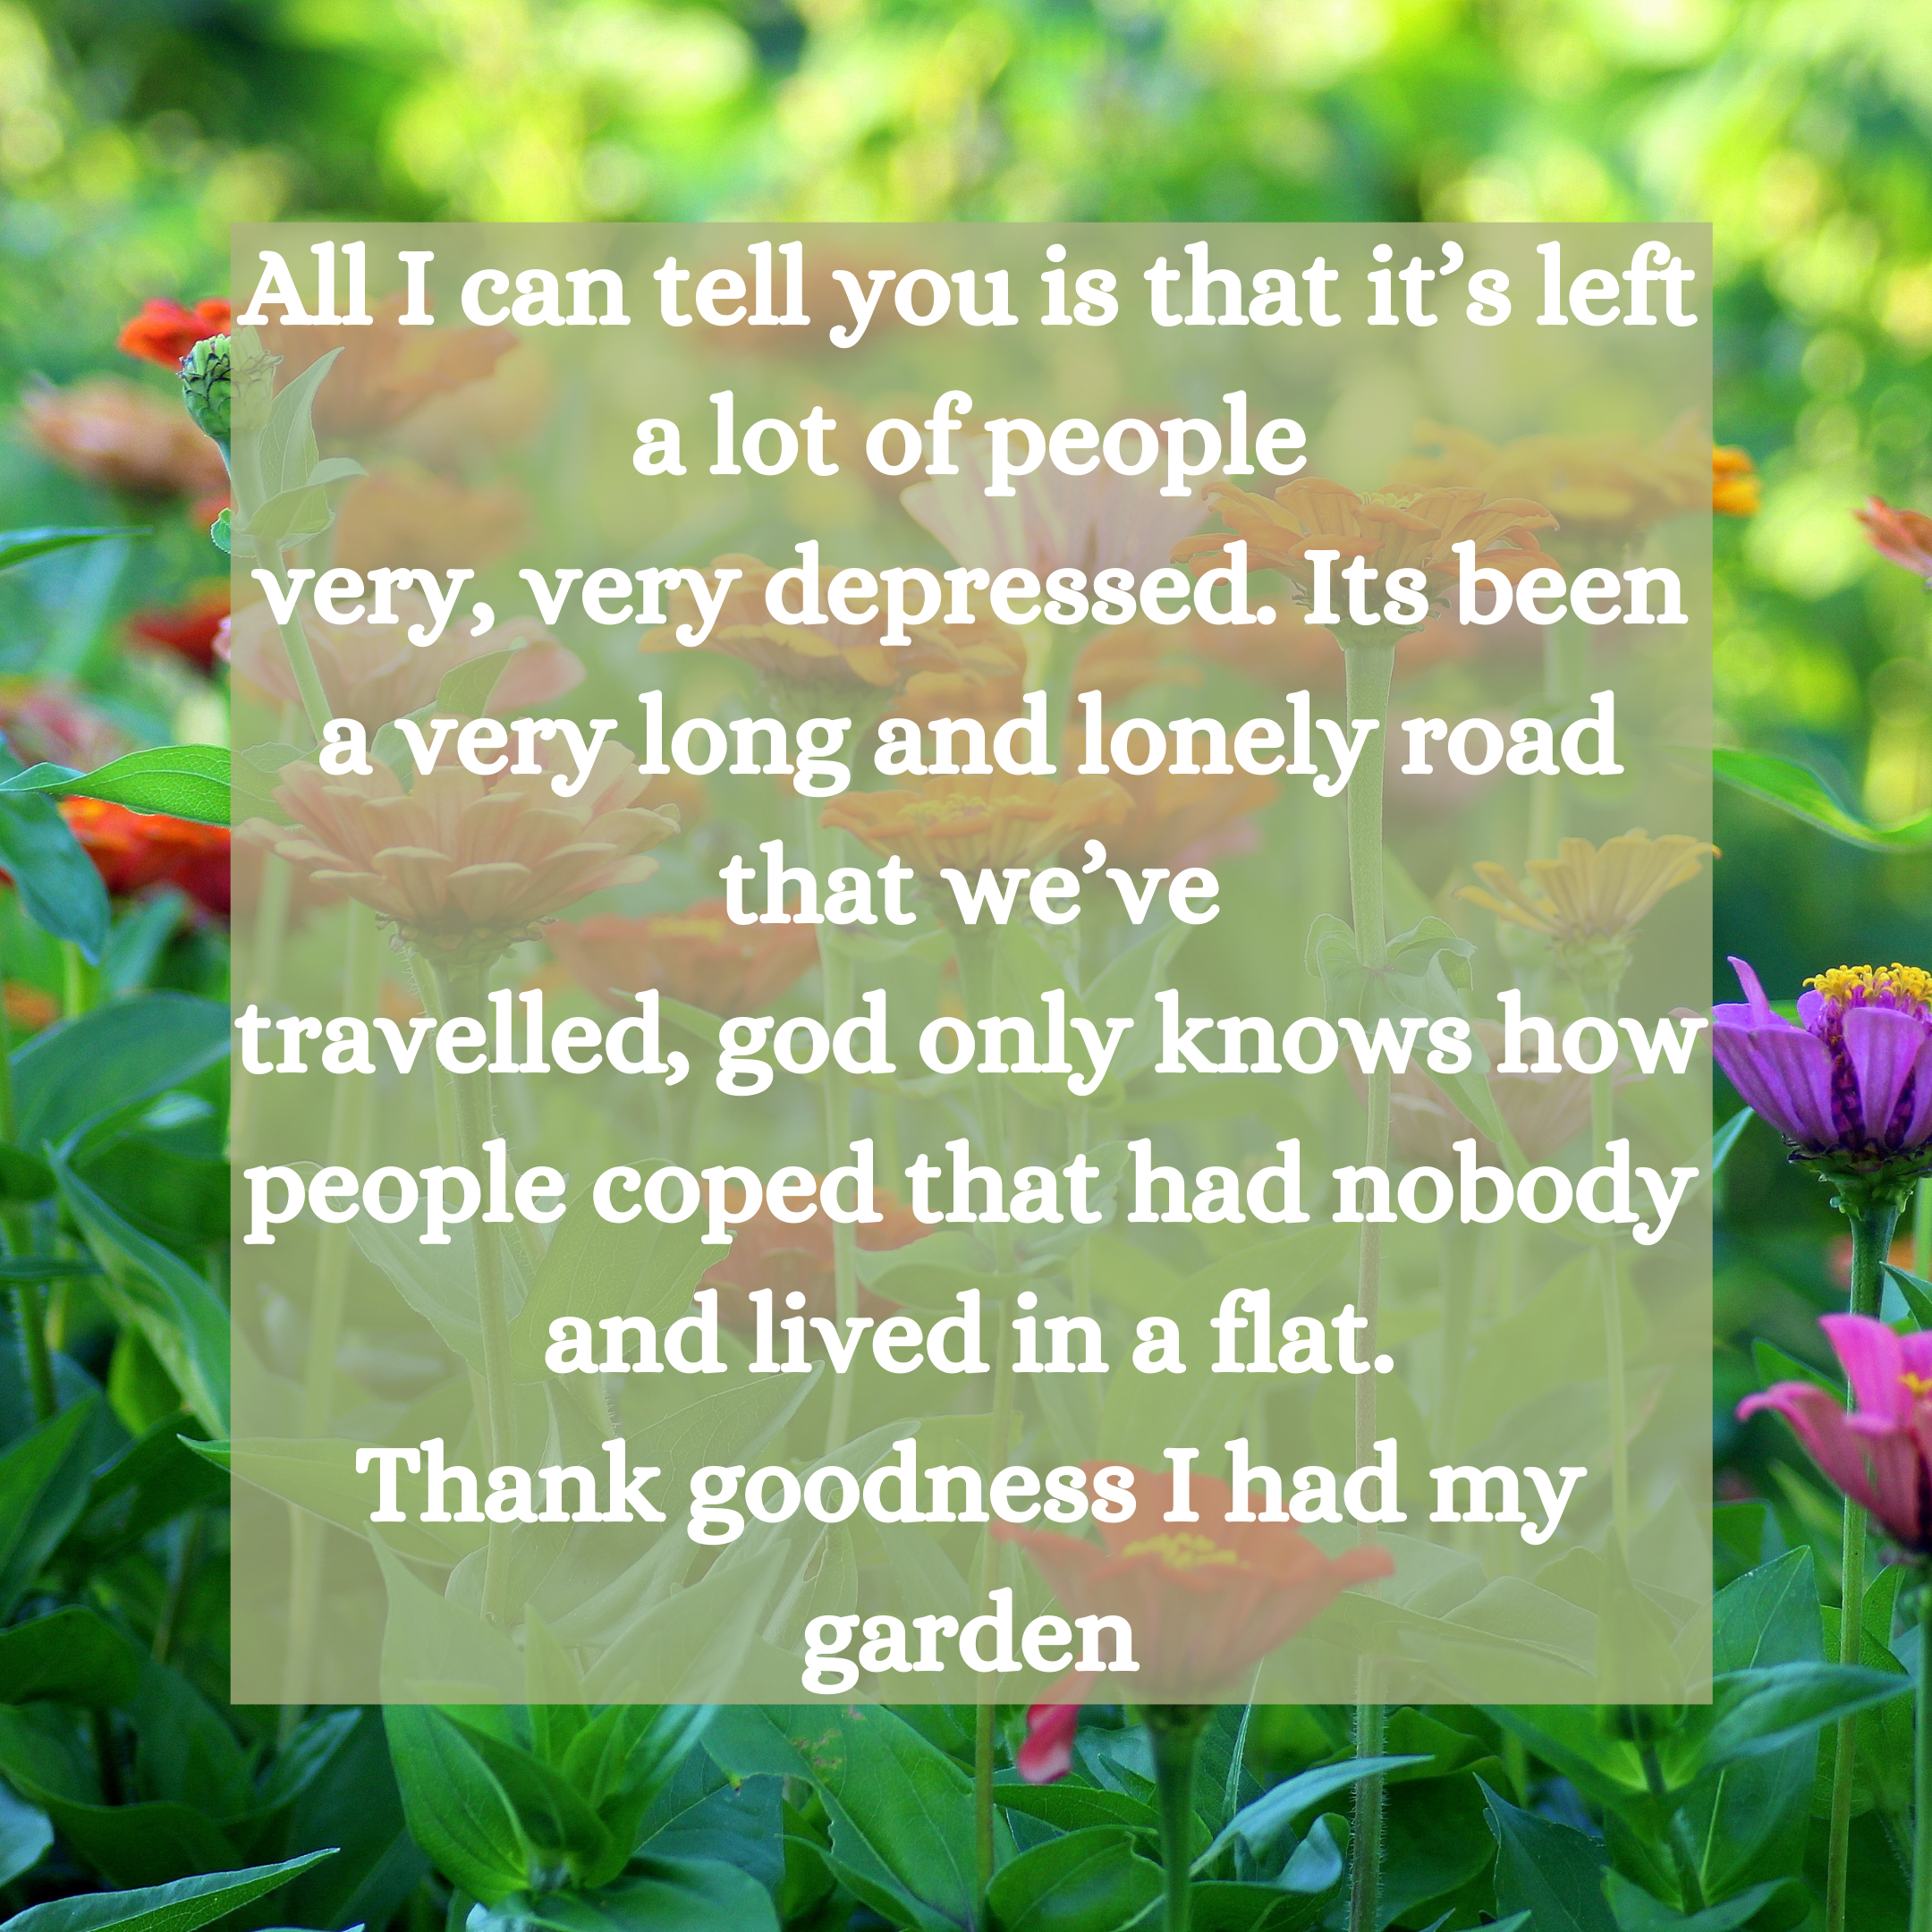 Quote from text: All I can tell you is that it's left a lot of people very, very depressed. Its been a very long and lonely road that we've travelled, god only knows how people coped that had nobody and lived in a flat. Thank goodness I had my garden